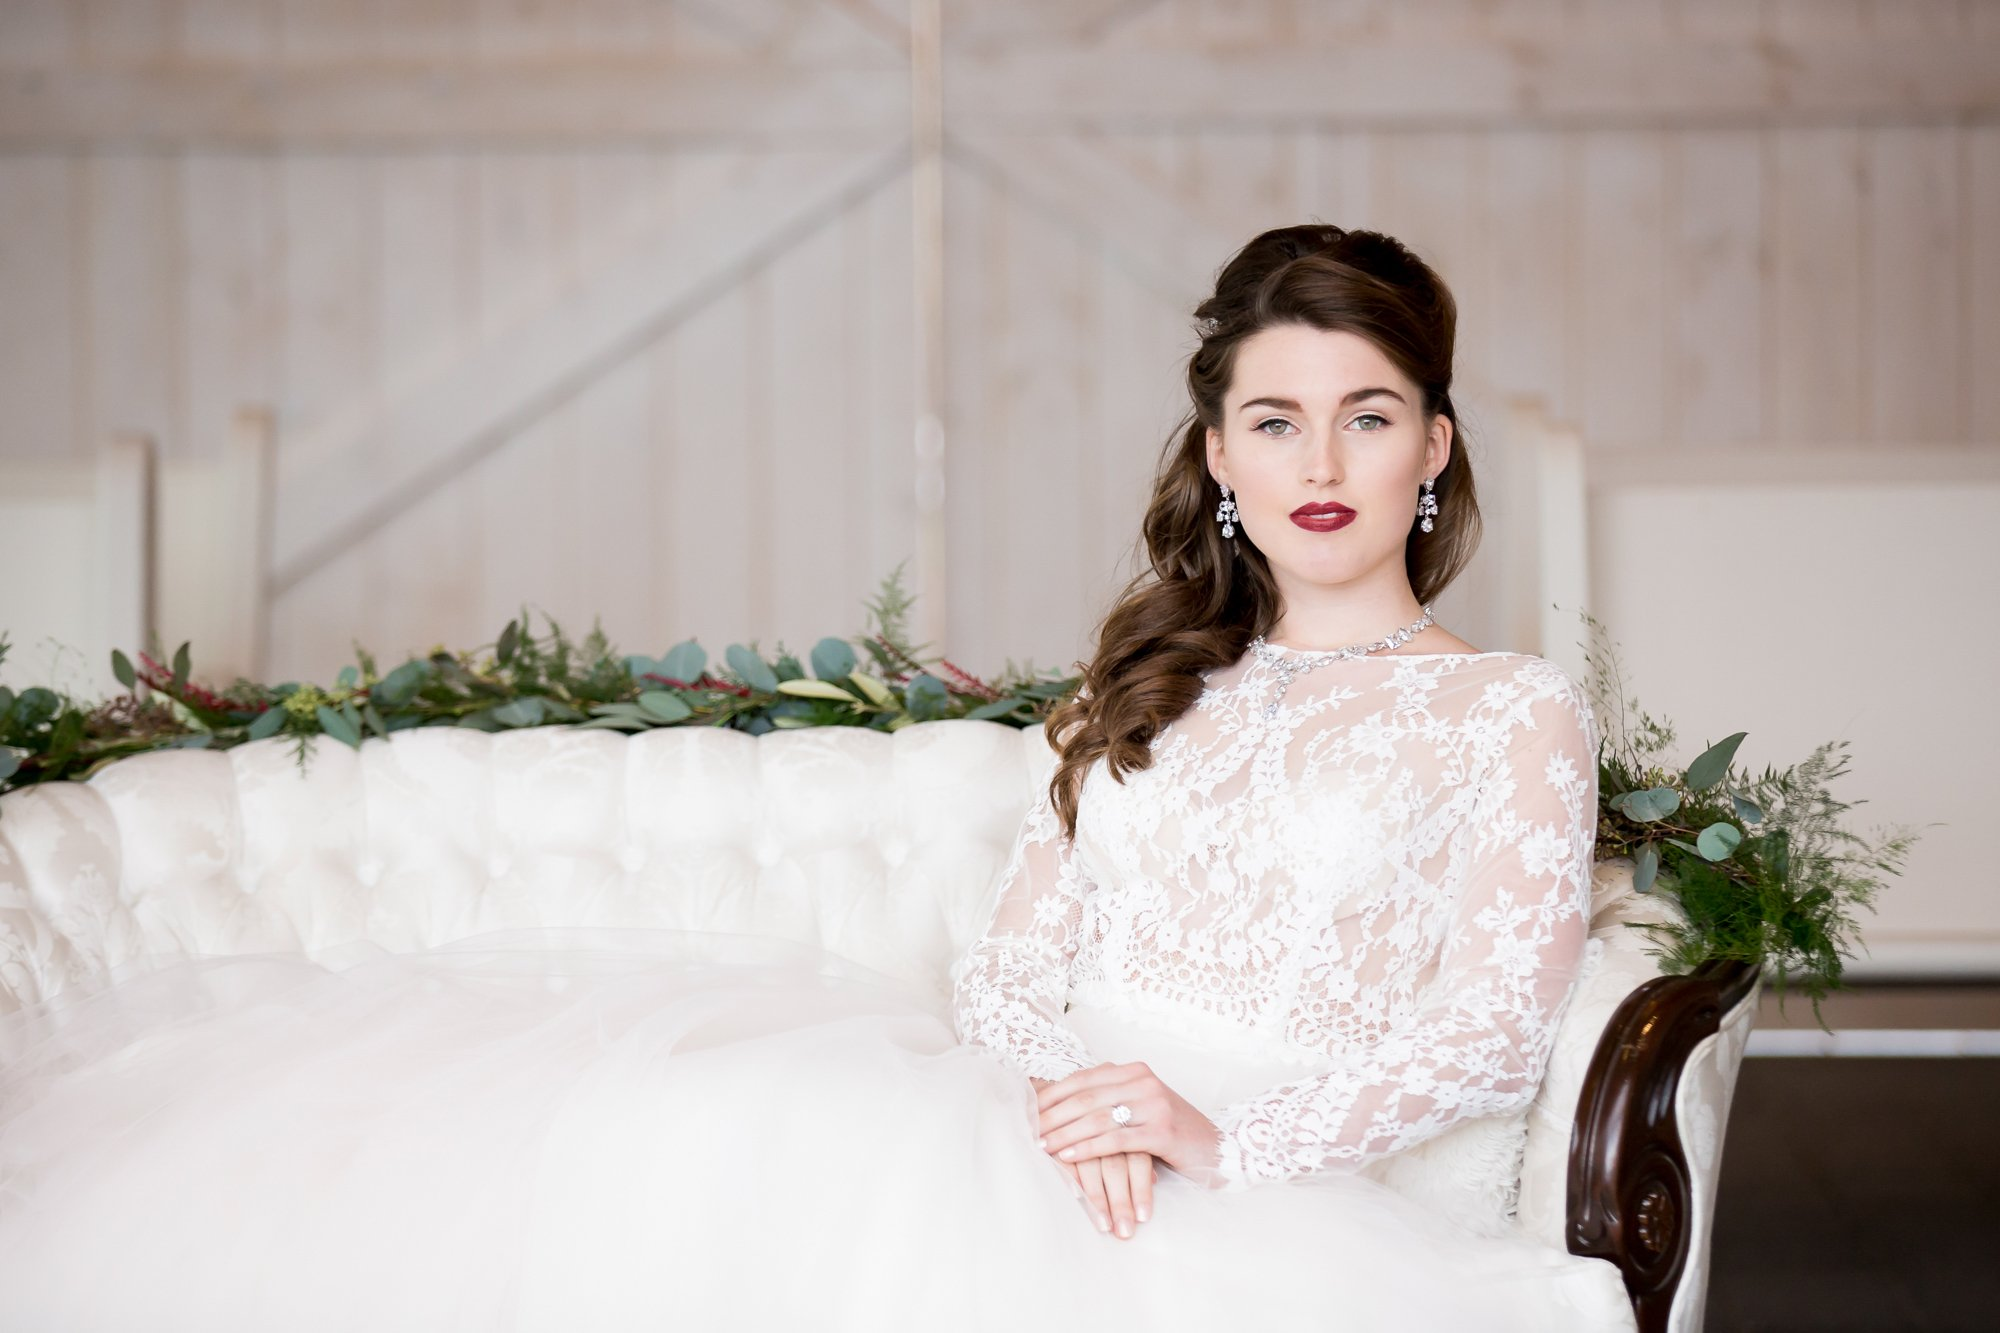 A bride sitting on a white couch